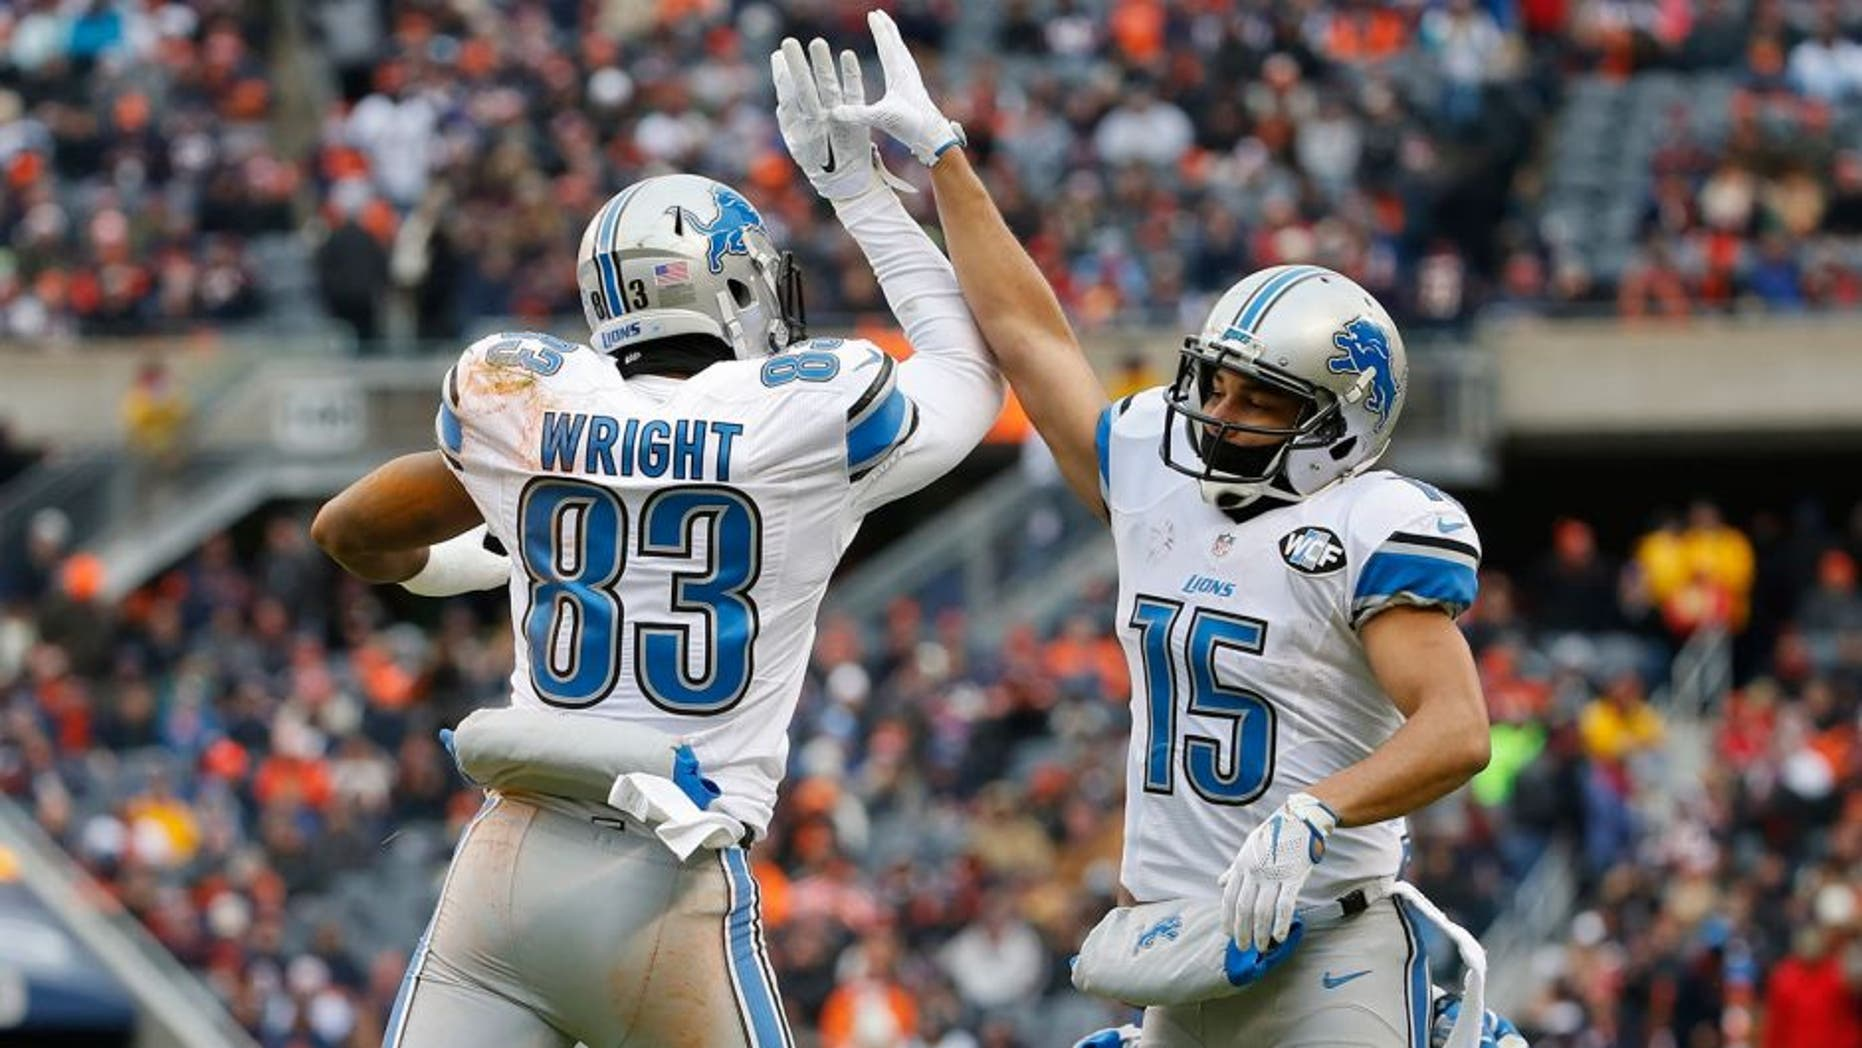 Jan 3, 2016; Chicago, IL, USA; Detroit Lions tight end Timothy Wright (83) celebrates with wide receiver Golden Tate (15) after scoring a touchdown against the Chicago Bears during the first half at Soldier Field. Mandatory Credit: Kamil Krzaczynski-USA TODAY Sports